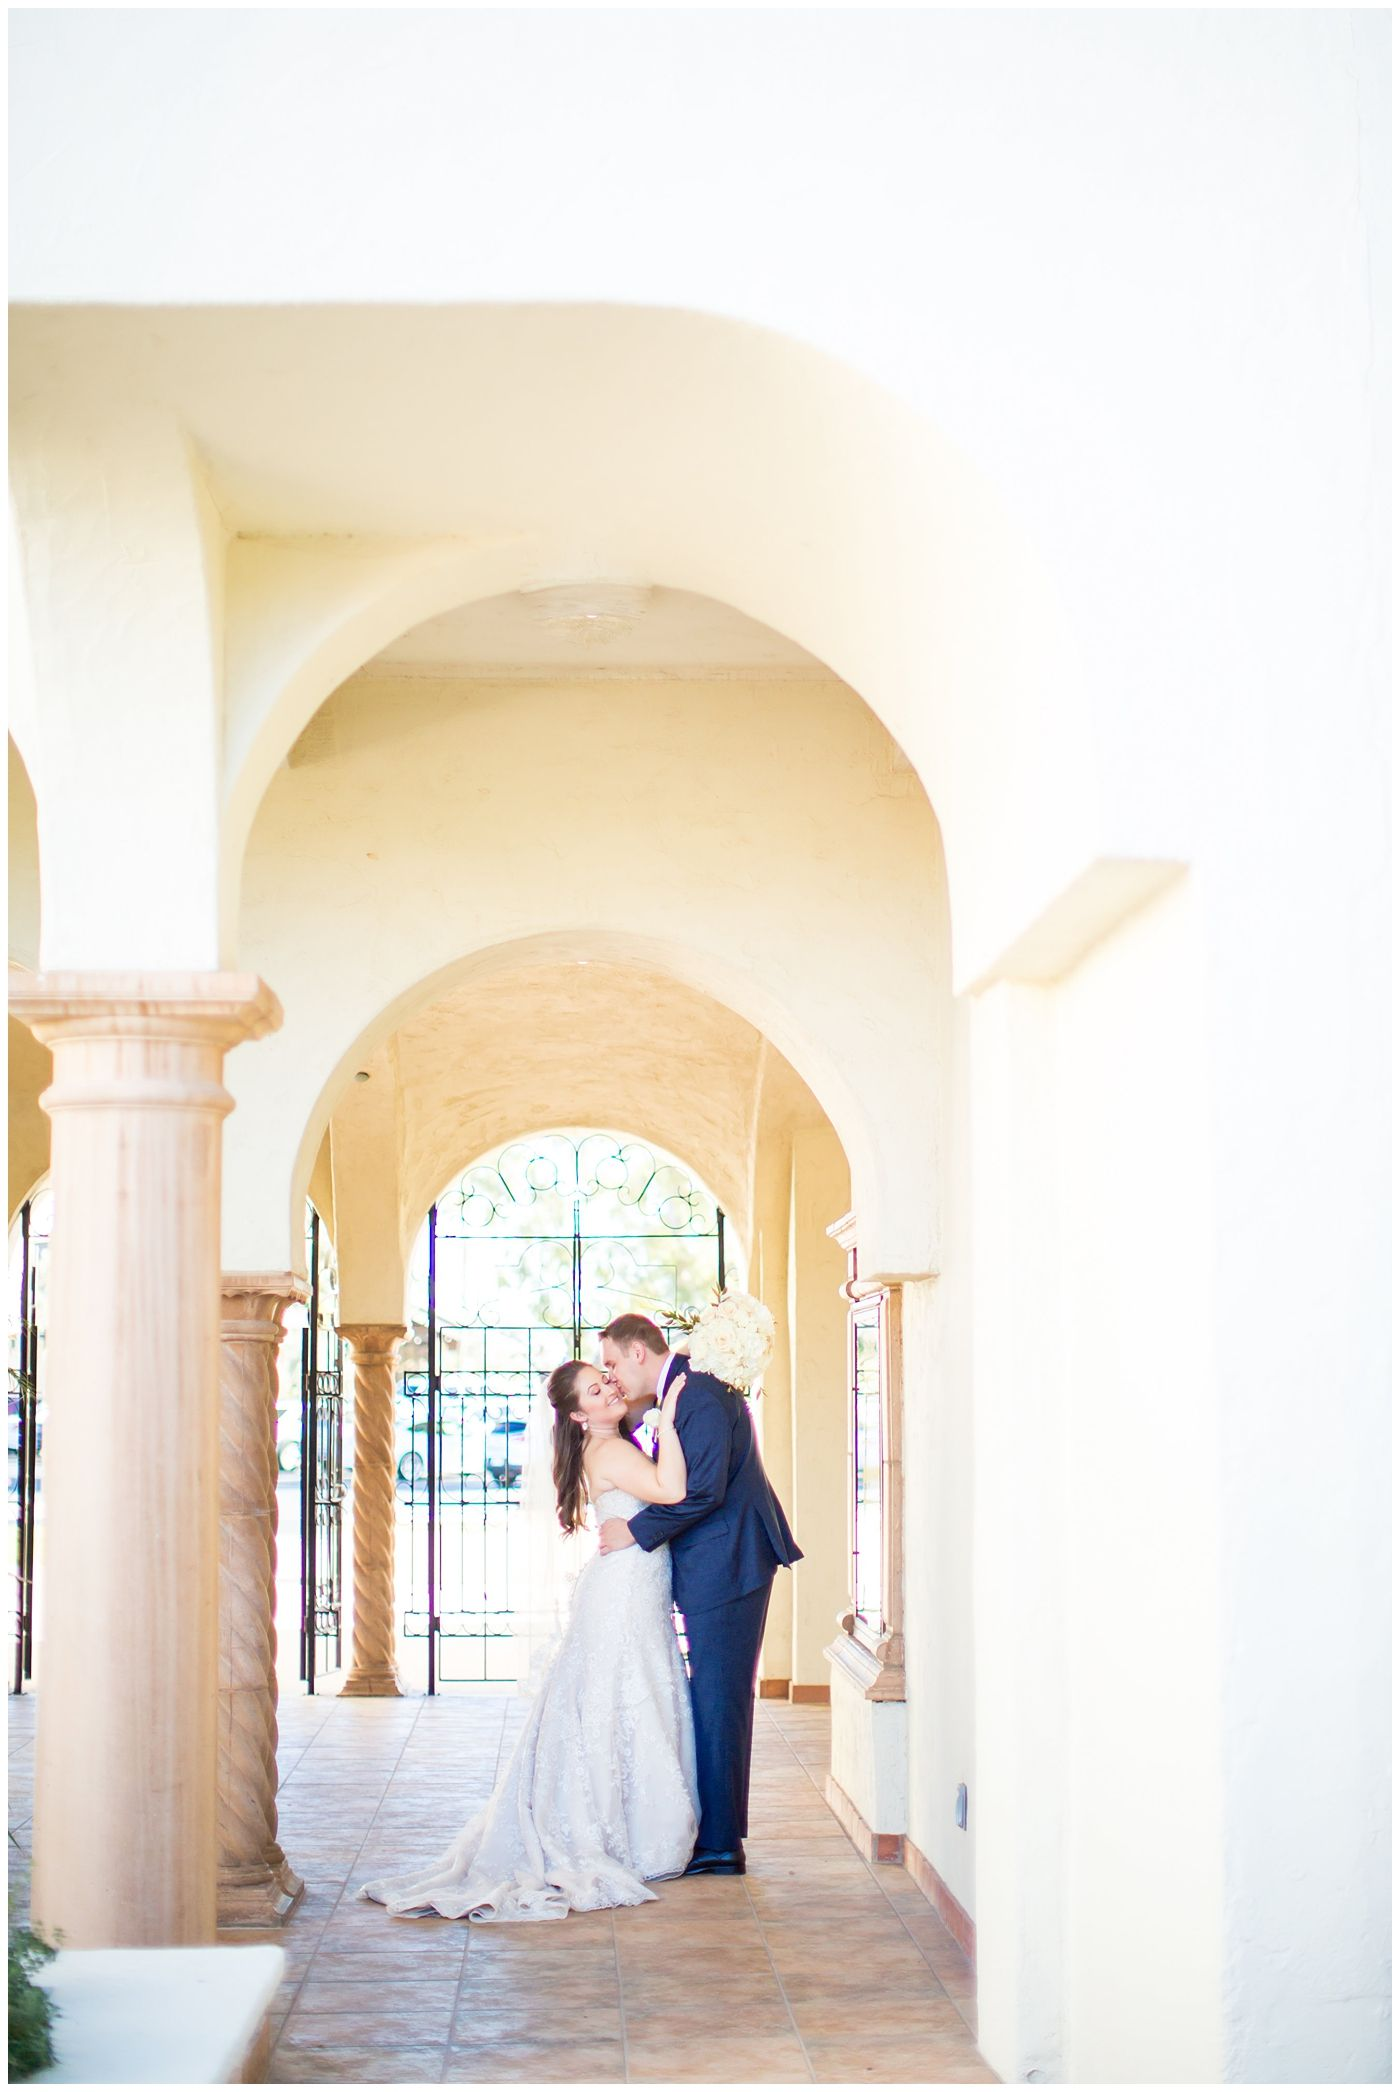 Classic romantic wedding at mccormick ranch pinterest romantic